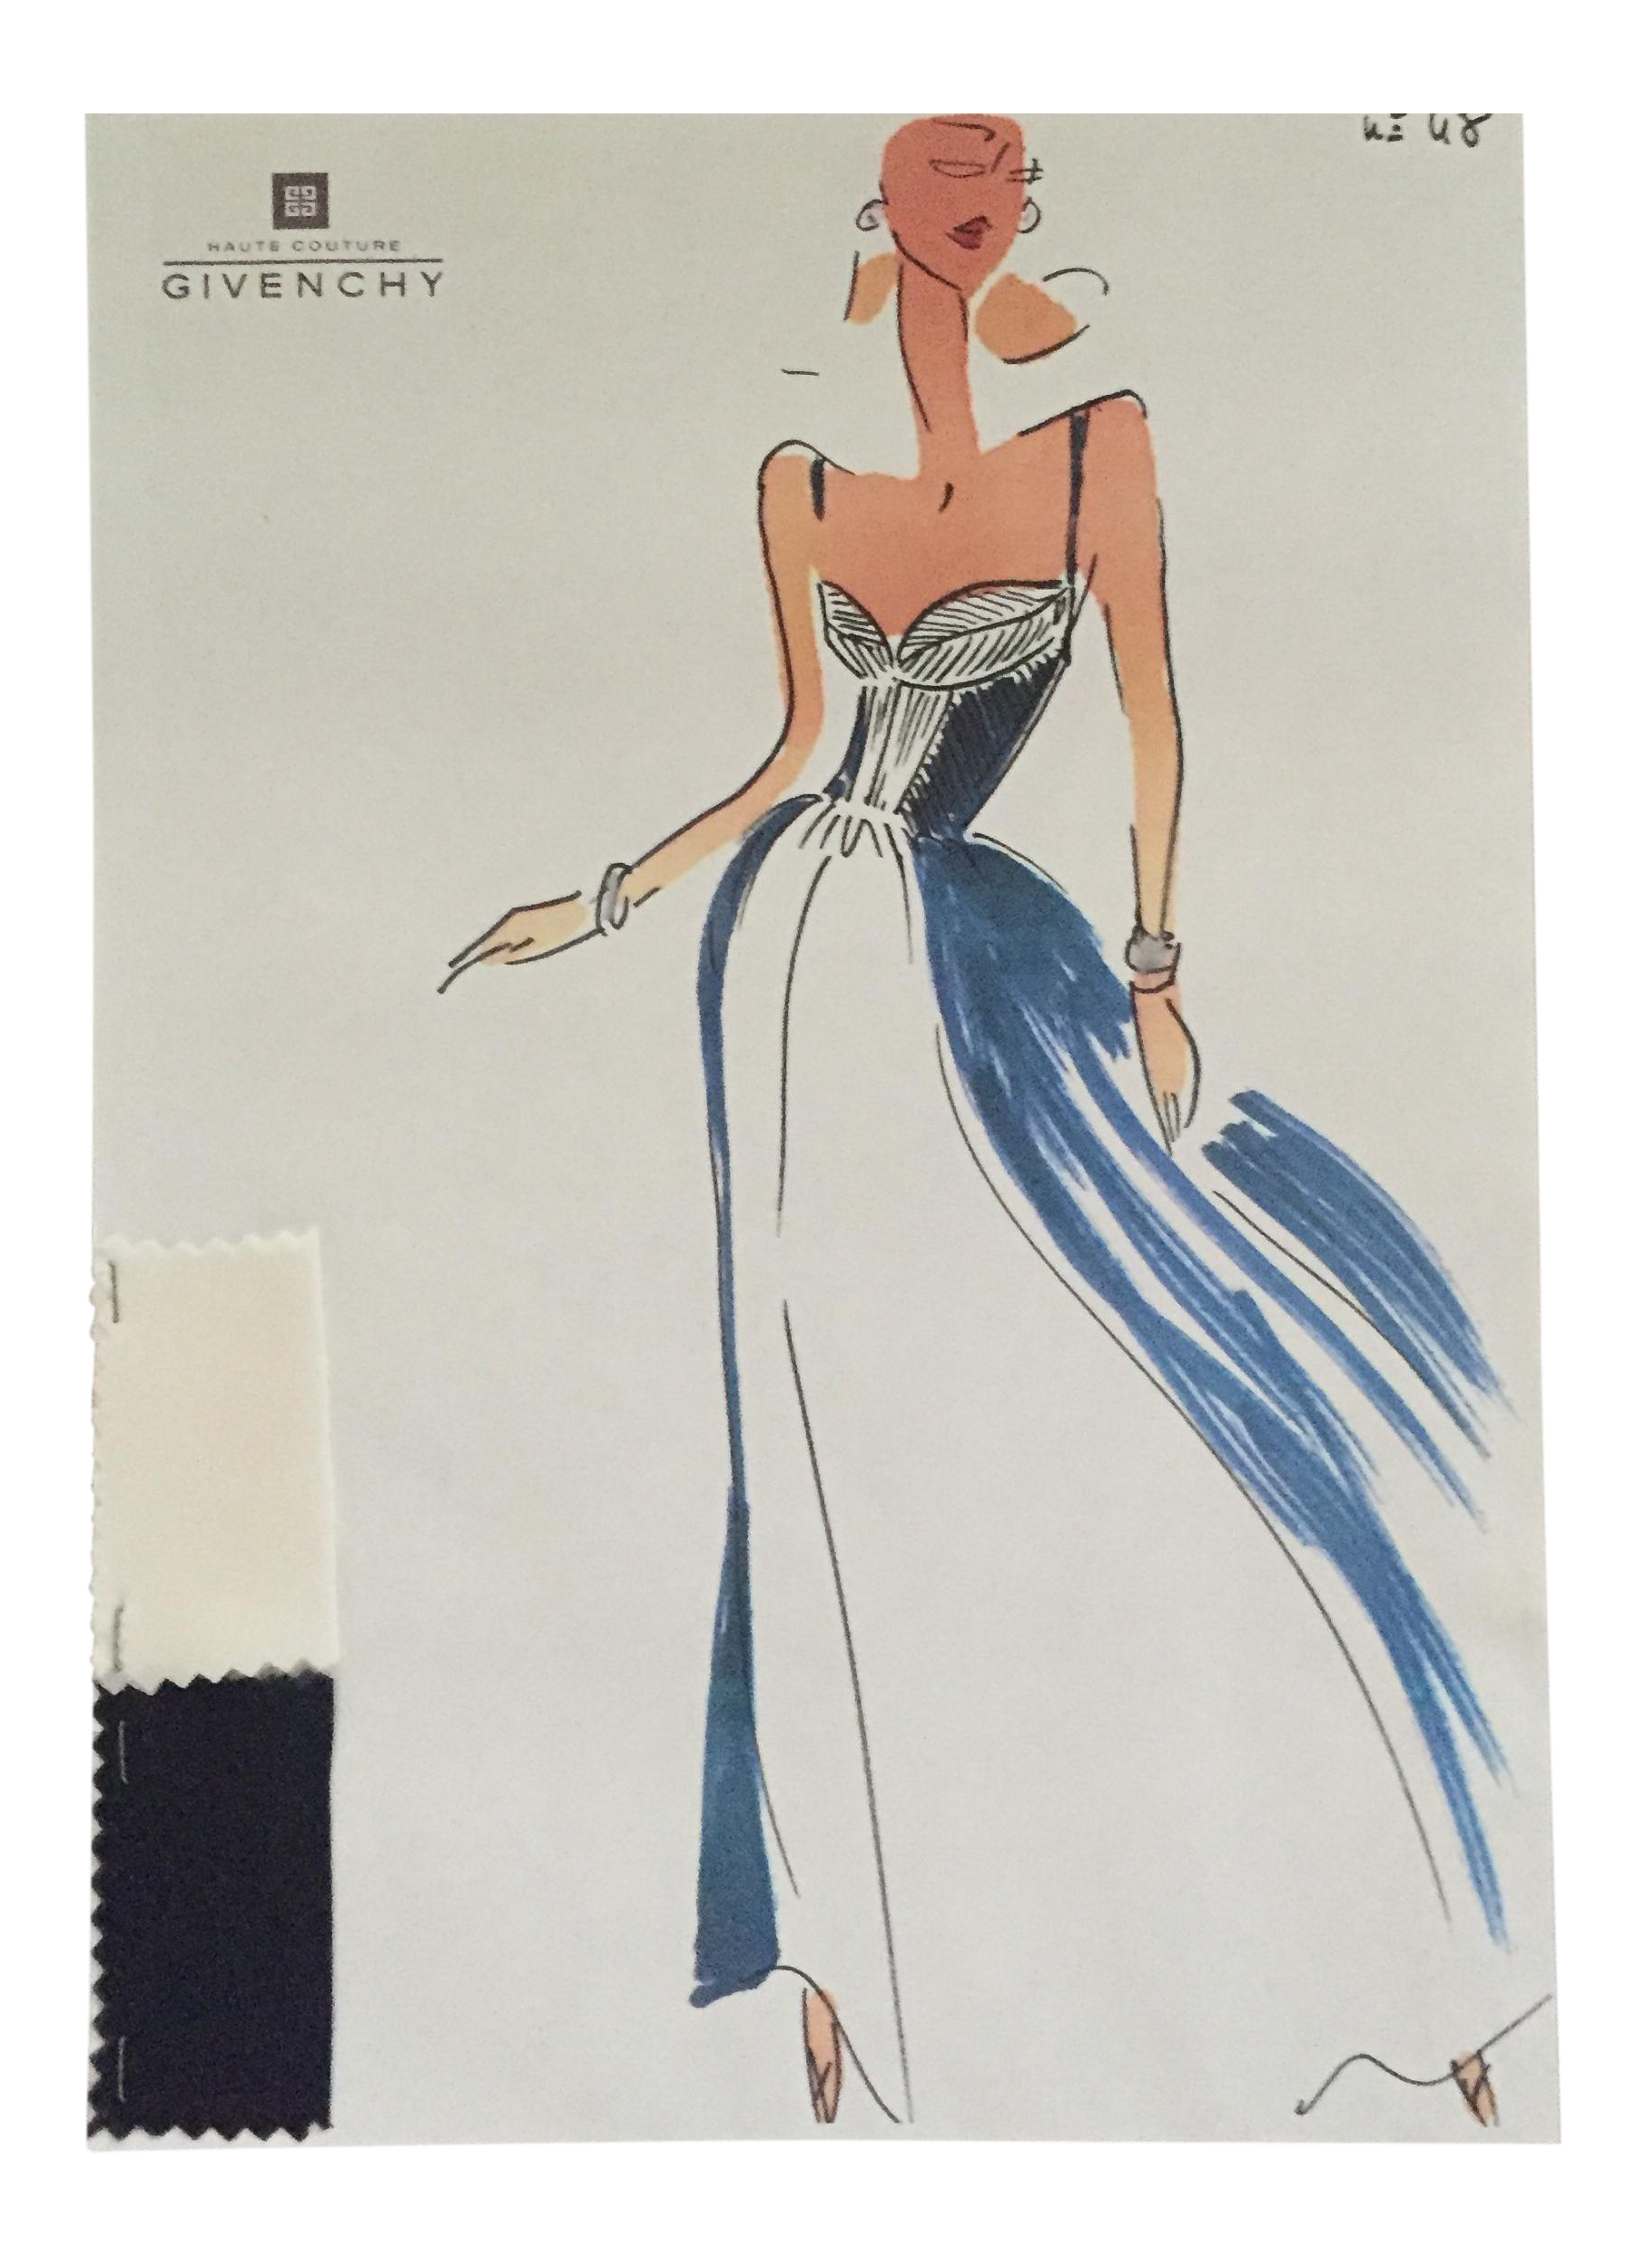 Drawing diary haute couture gown. Givenchy croquis sketch chairish